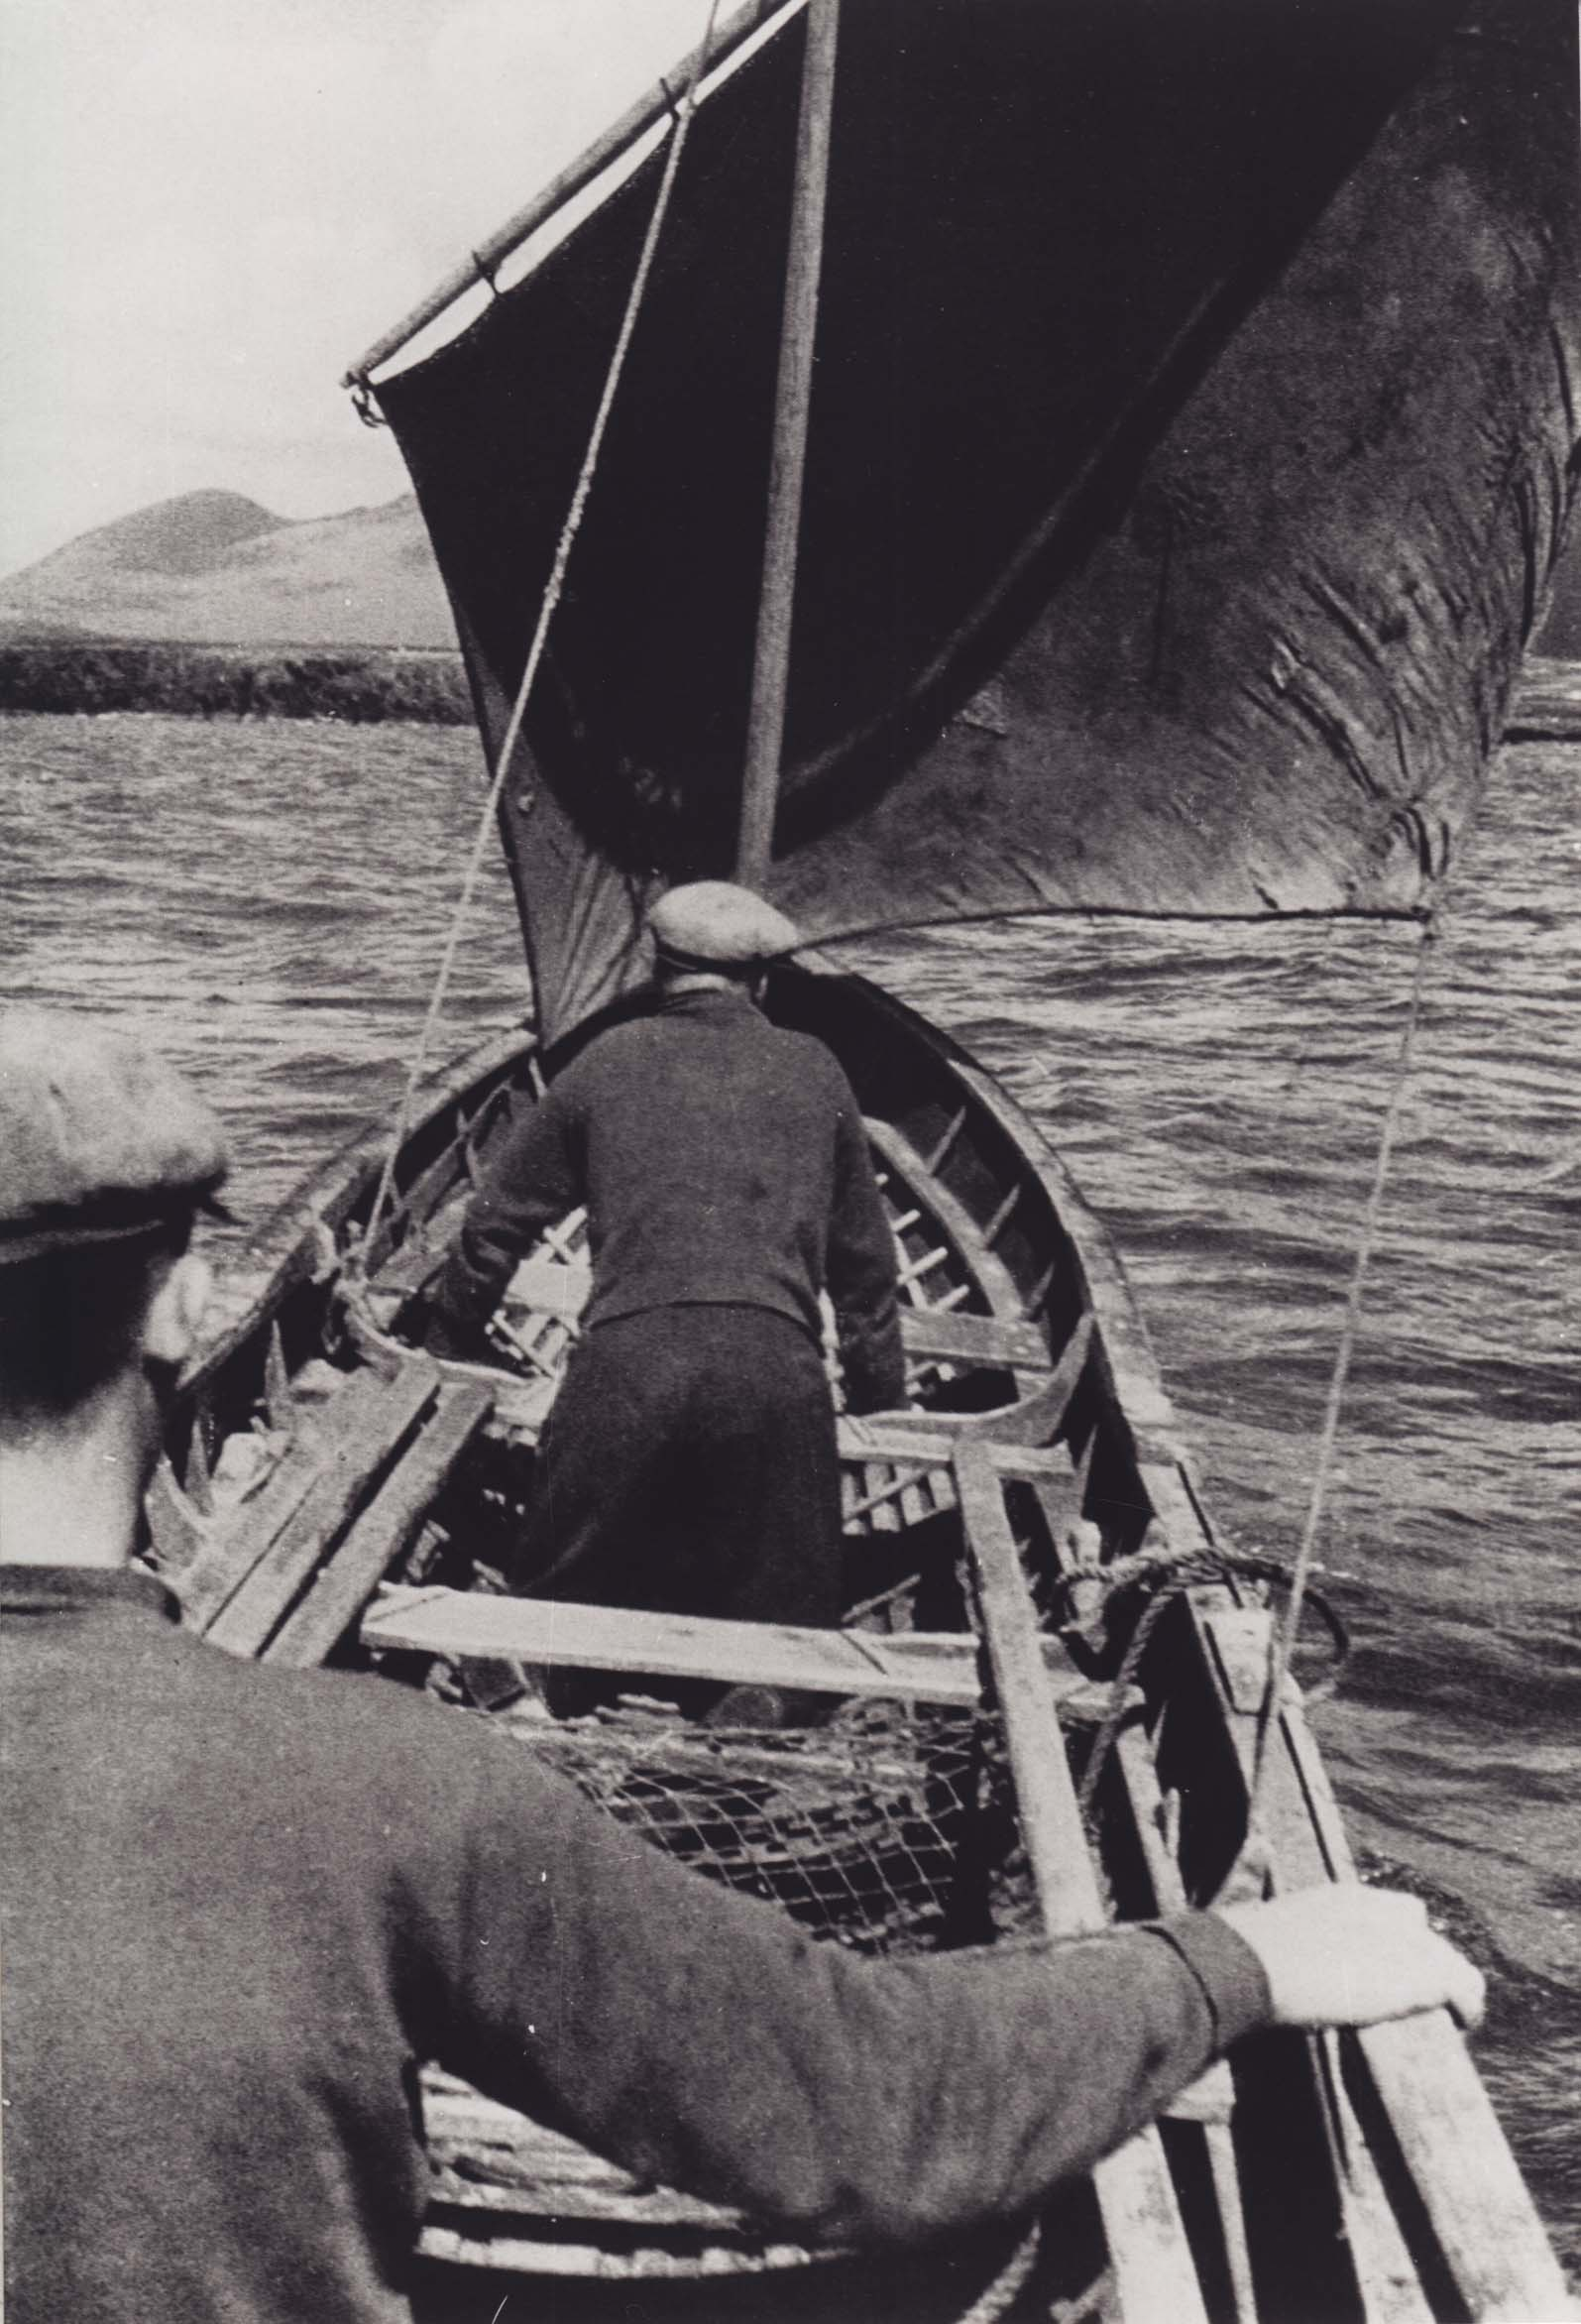 A naomhóg under sail. A sail was hoisted on the naomhógs during long journeys with favourable wind. Taken by Tomás Ó Muircheartaigh. Courtesy National Folklore Collection, UCD.